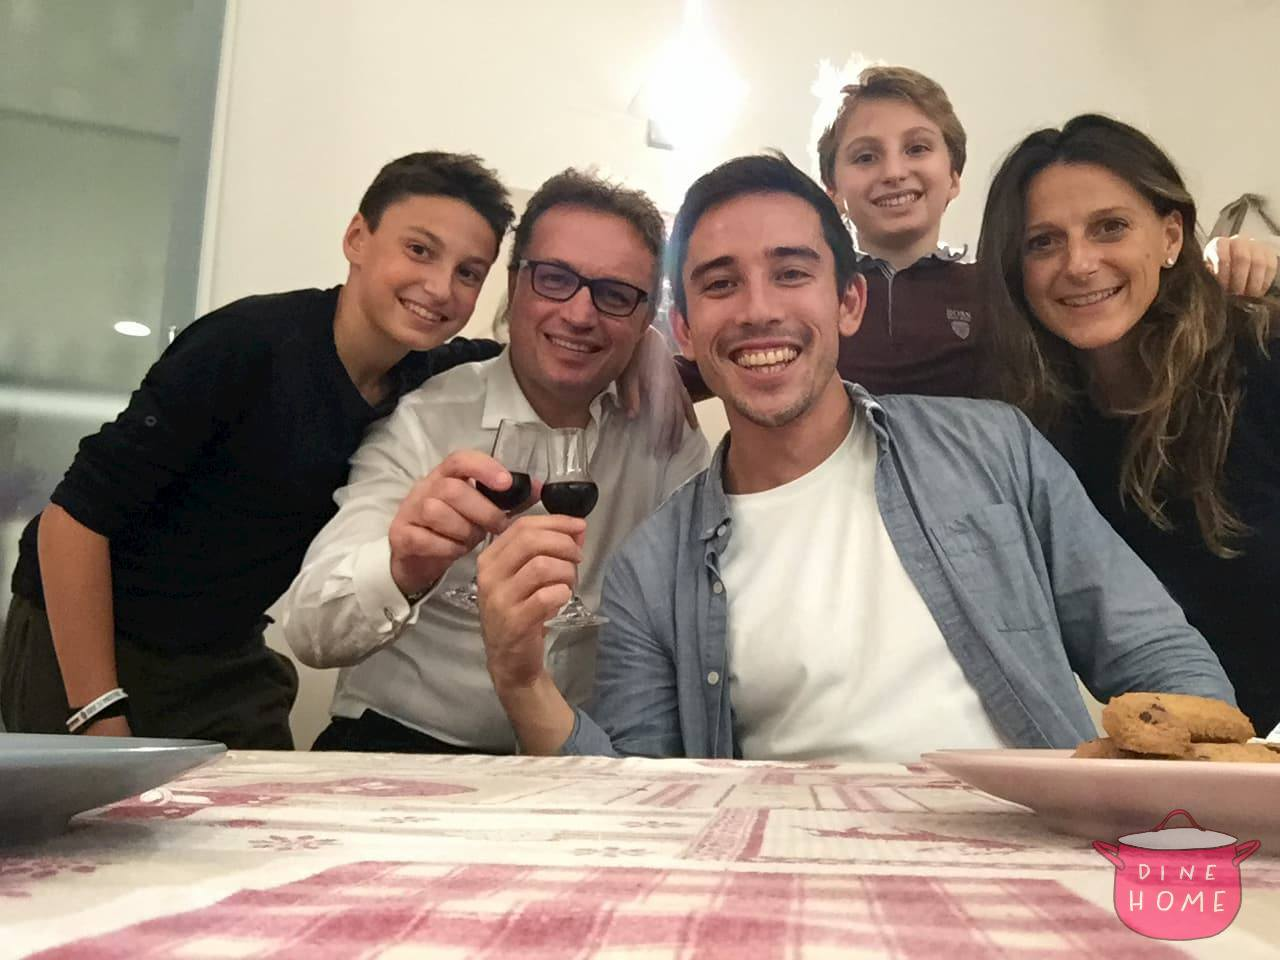 Daniel, a student from the USA, having dinner with his Dinehome family.